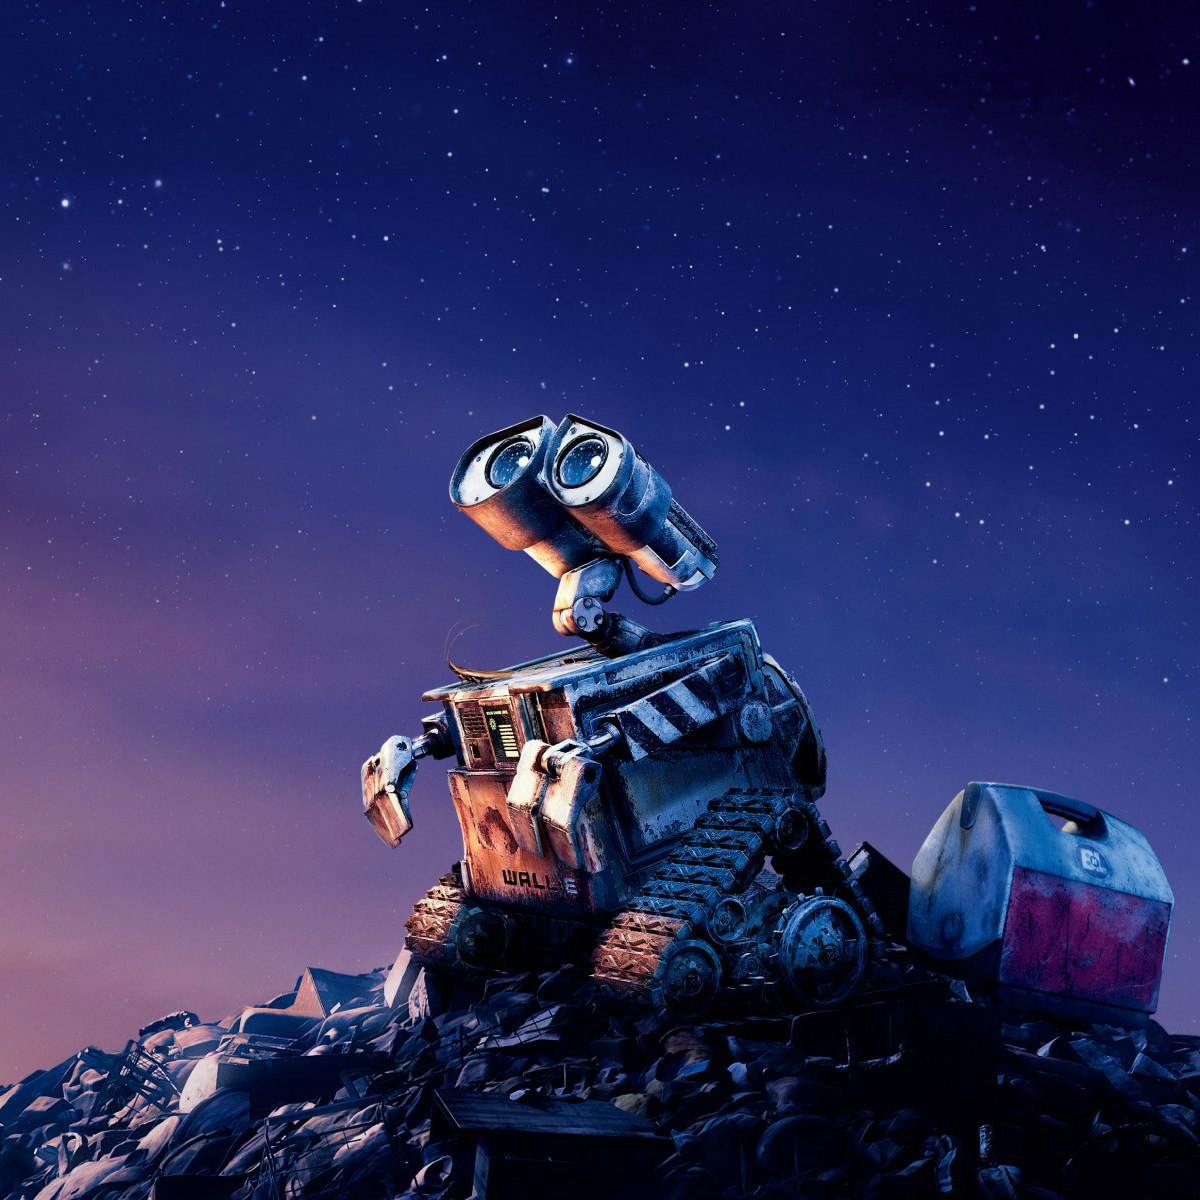 #46 | WALL-E 2: A Garbage Movie